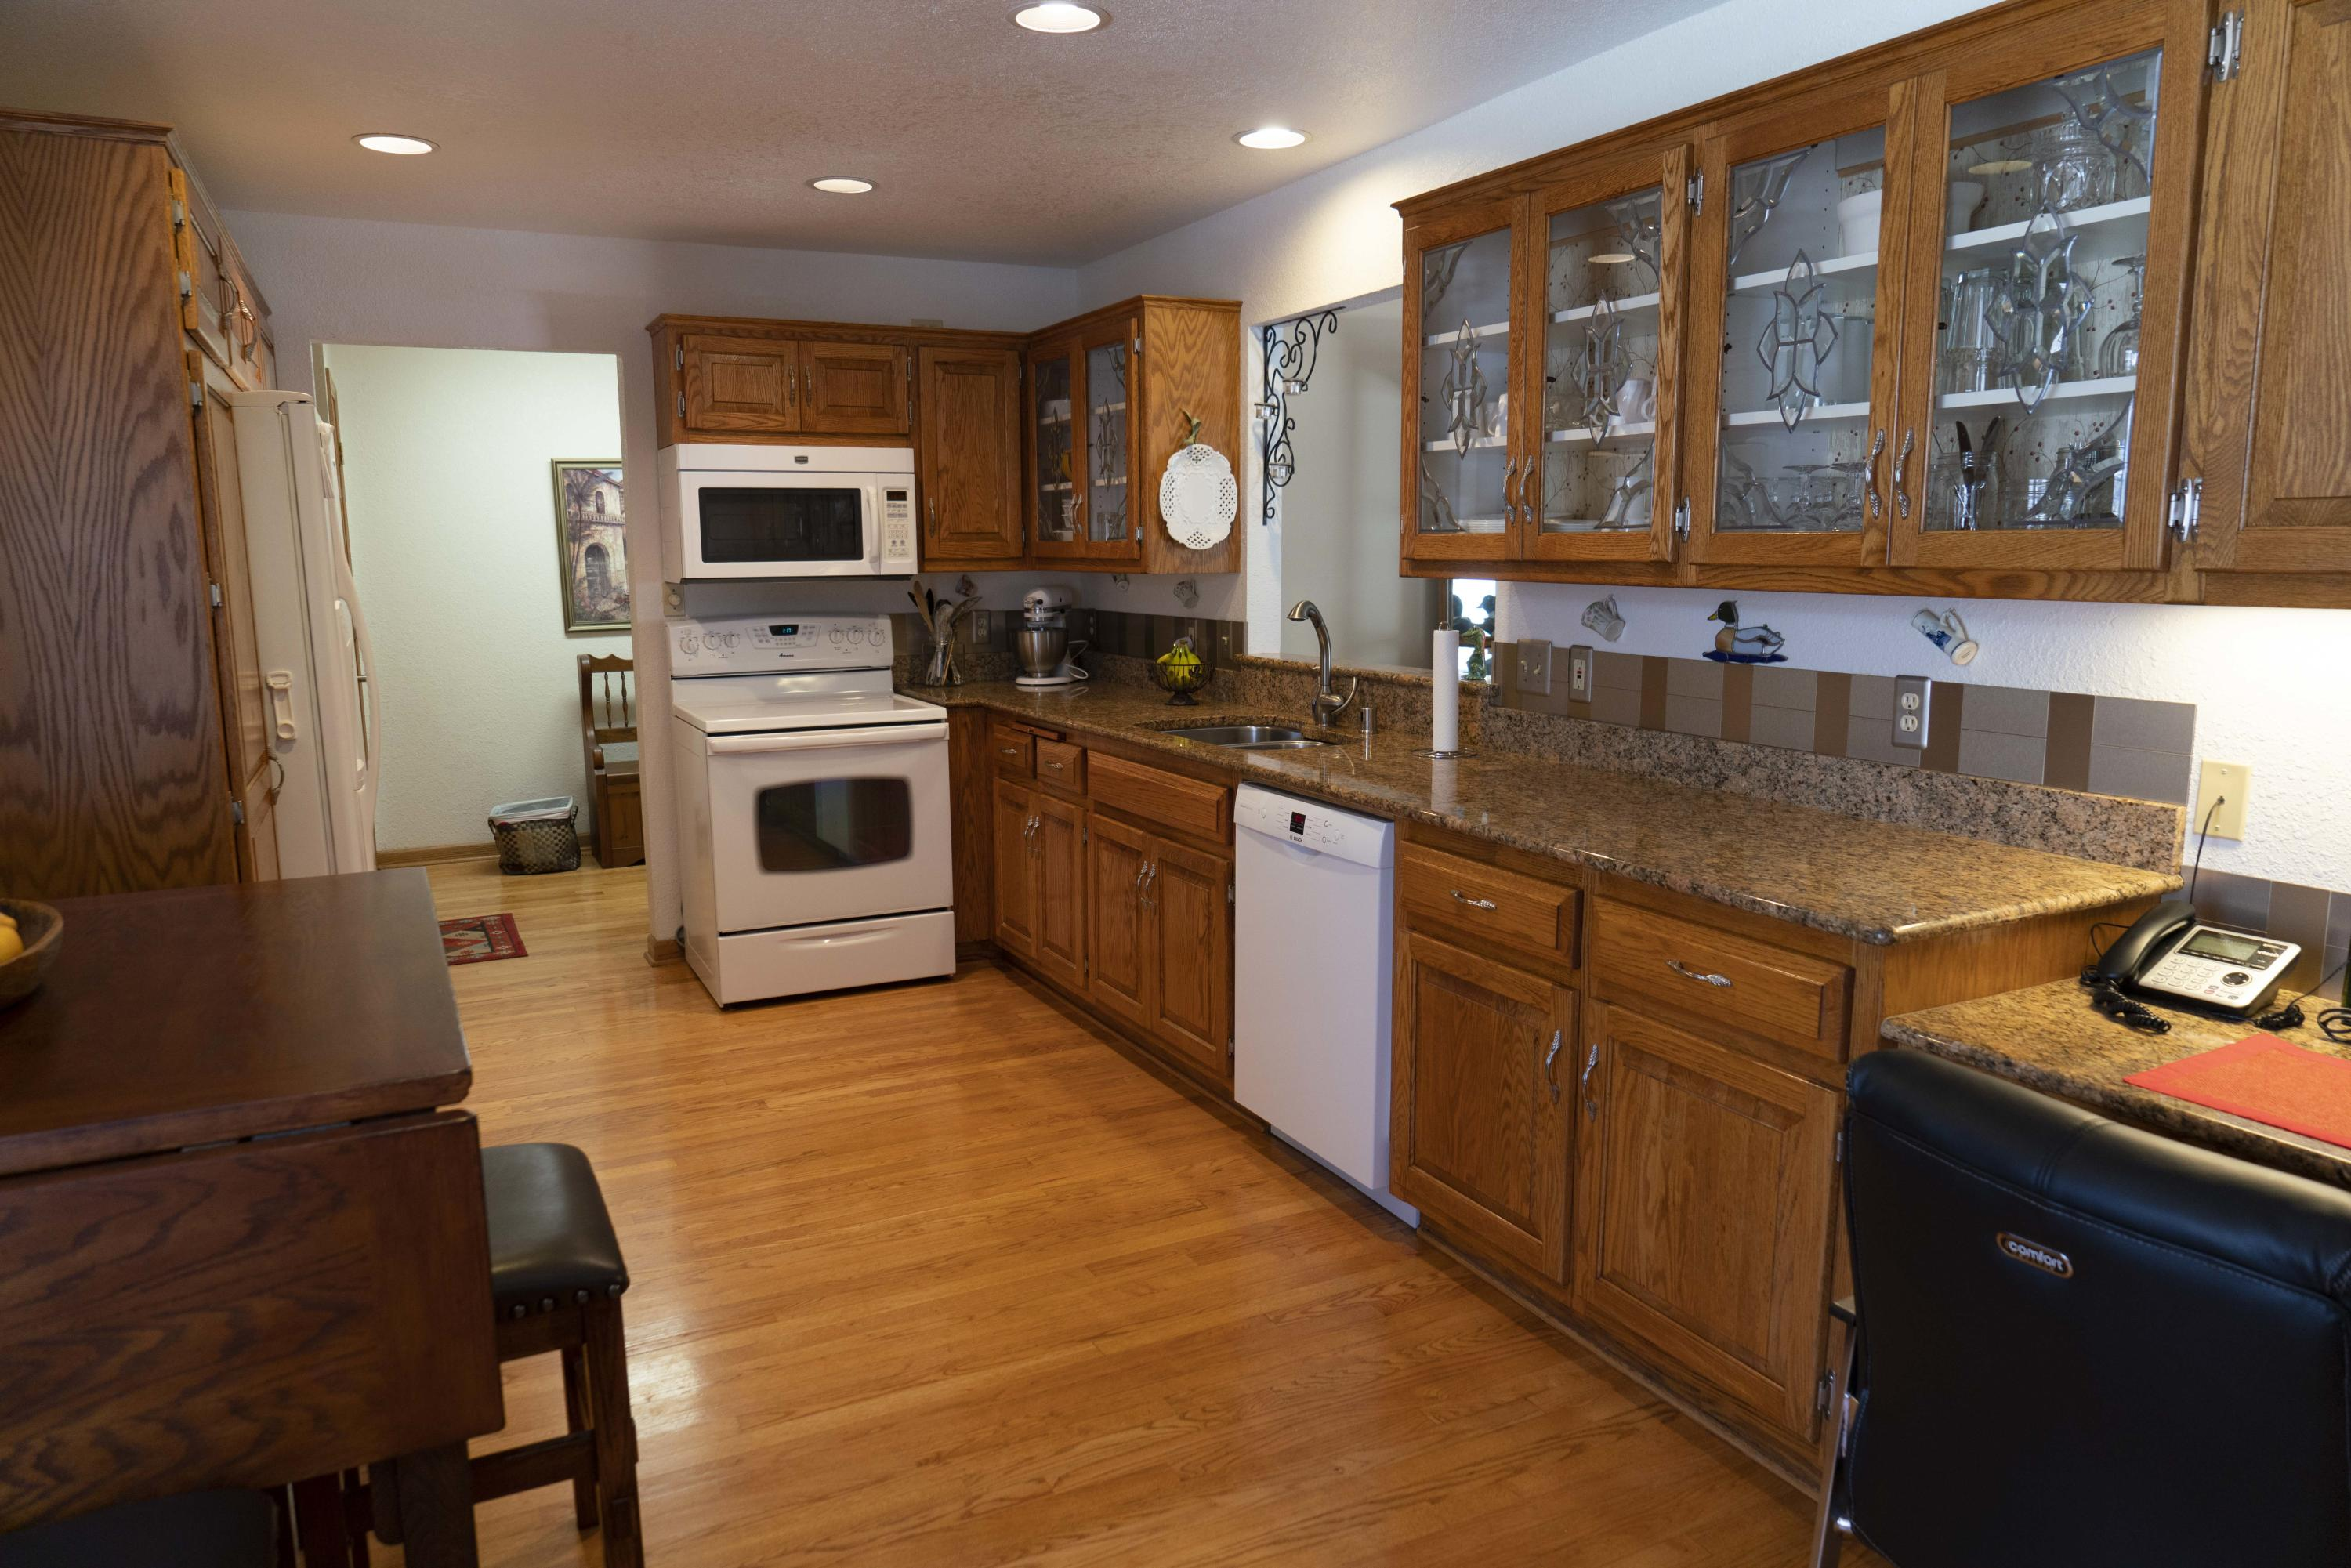 2607 Pebble Valley Rd, Waukesha, Wisconsin 53188, 2 Bedrooms Bedrooms, 7 Rooms Rooms,3 BathroomsBathrooms,Condominiums,For Sale,Pebble Valley Rd,1,1682281